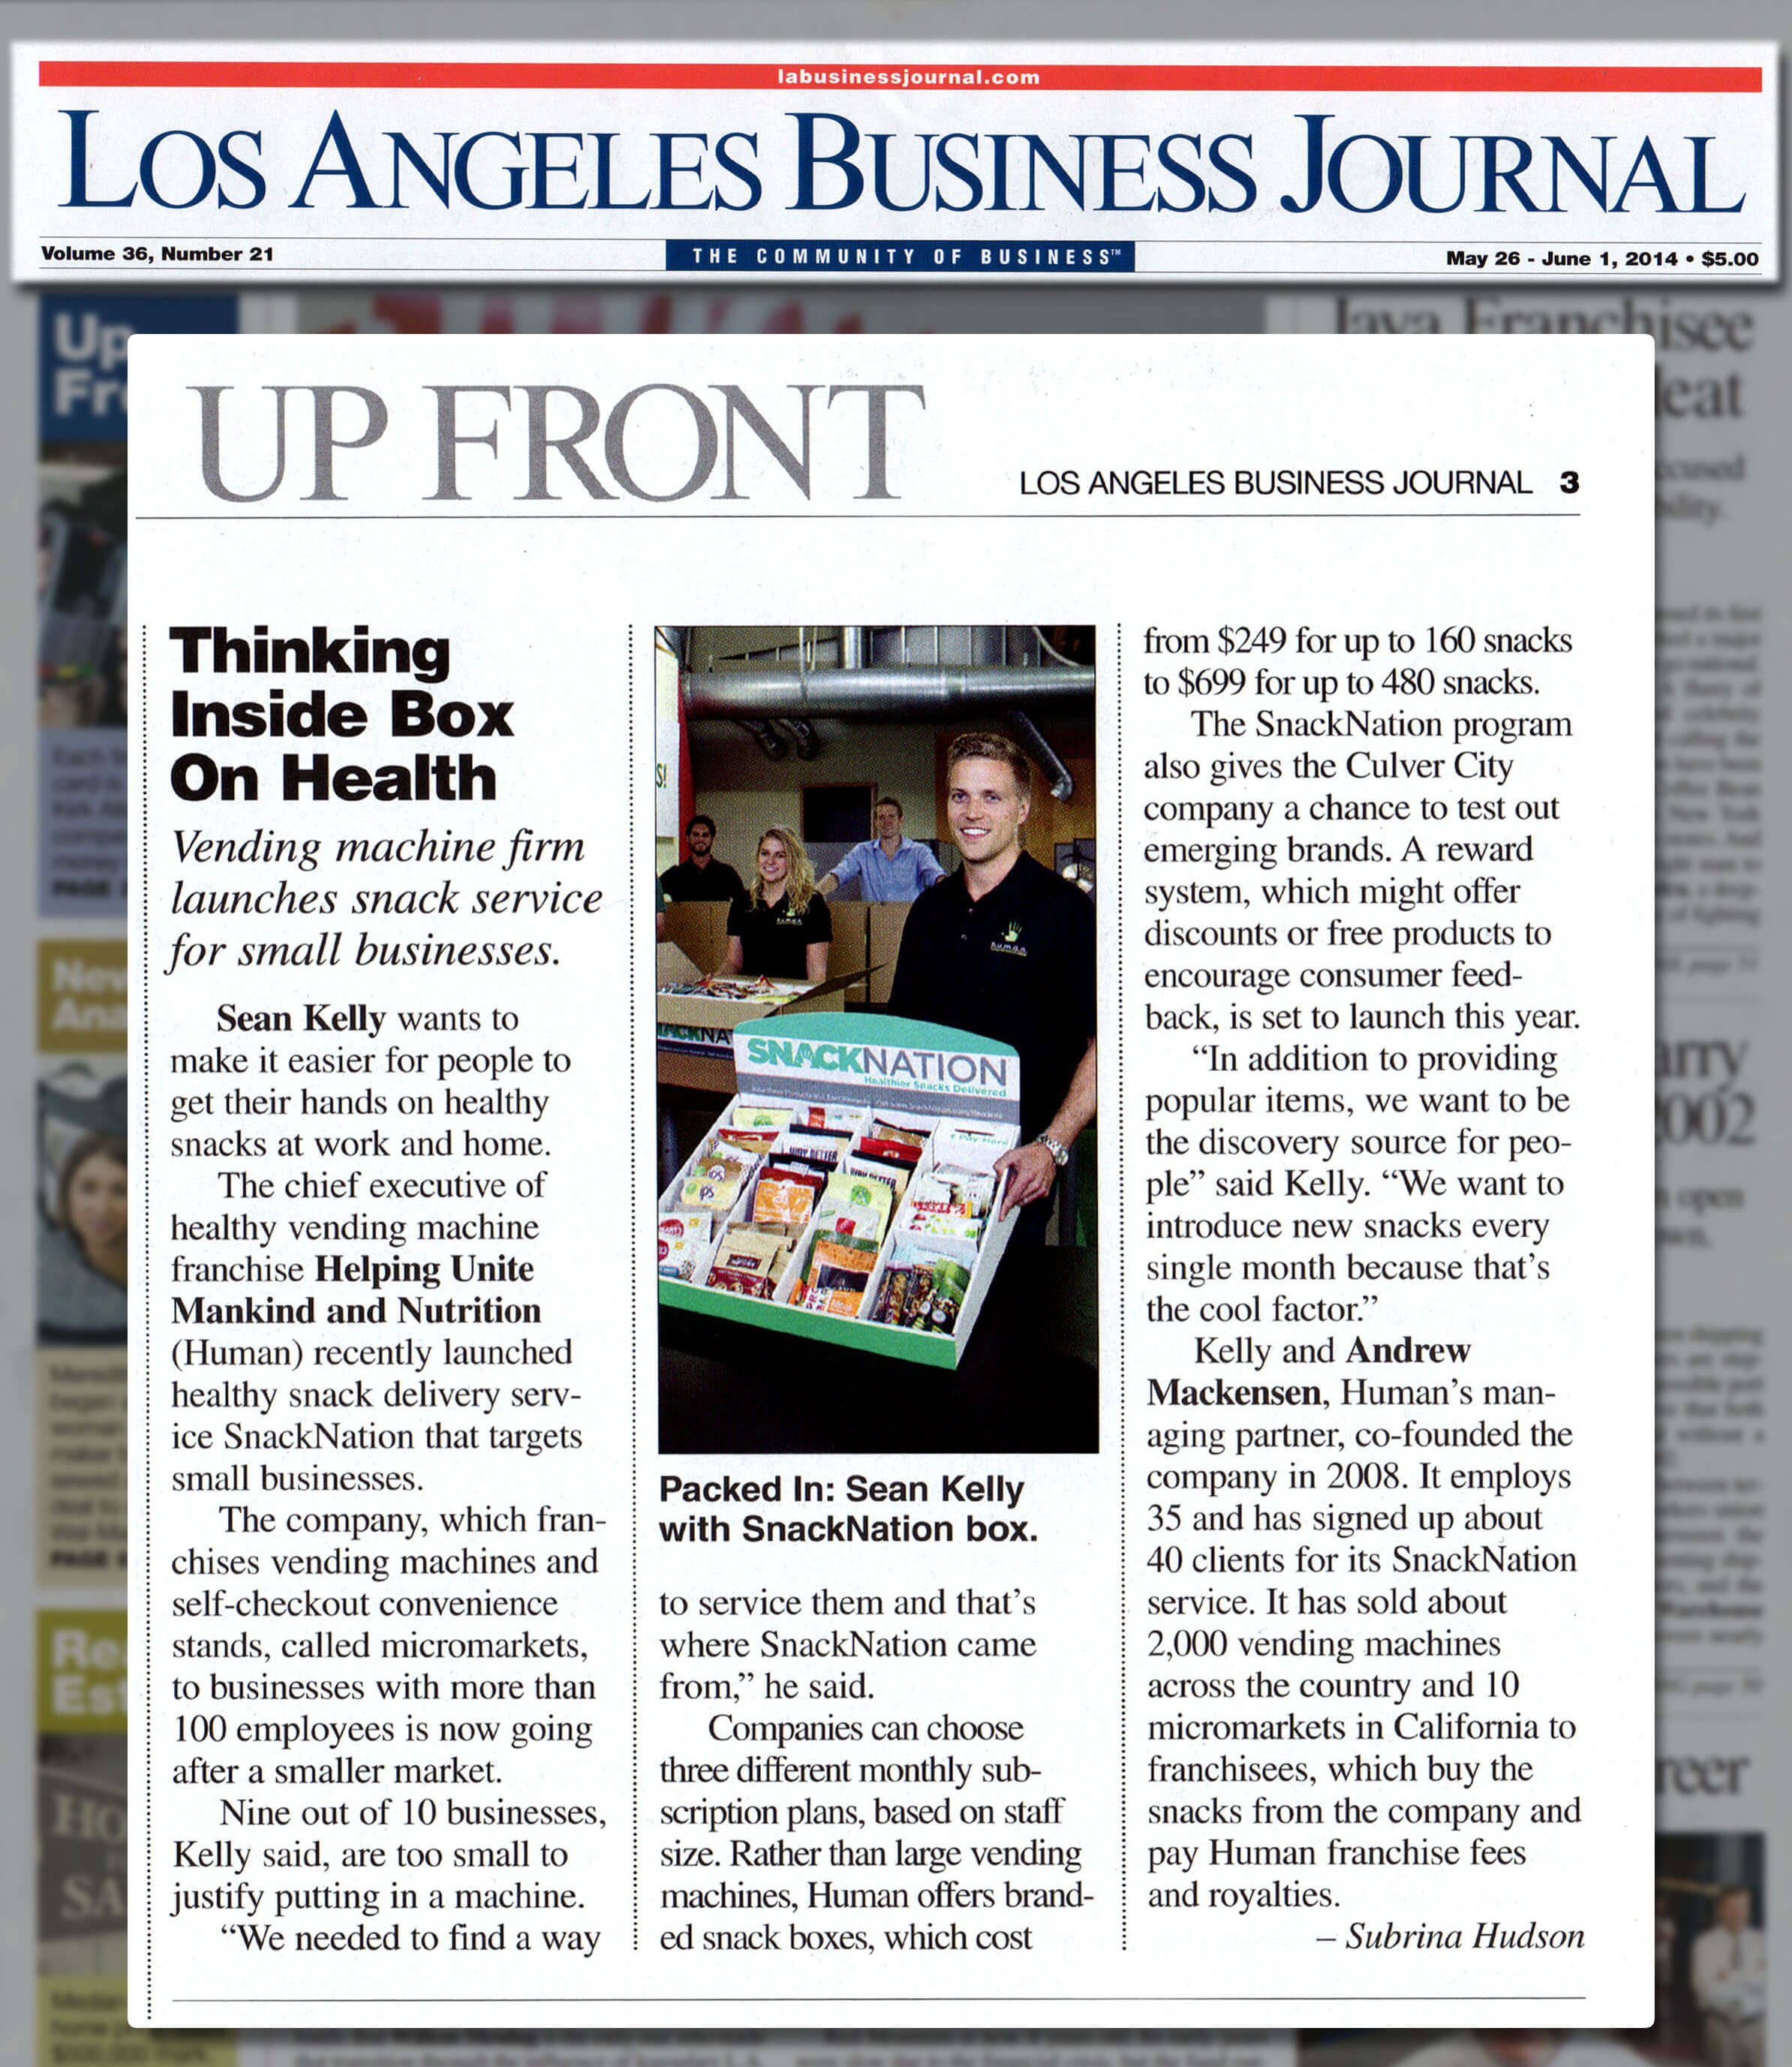 SnackNation Snack Delivery Service Featured in the Los Angeles Business Journal